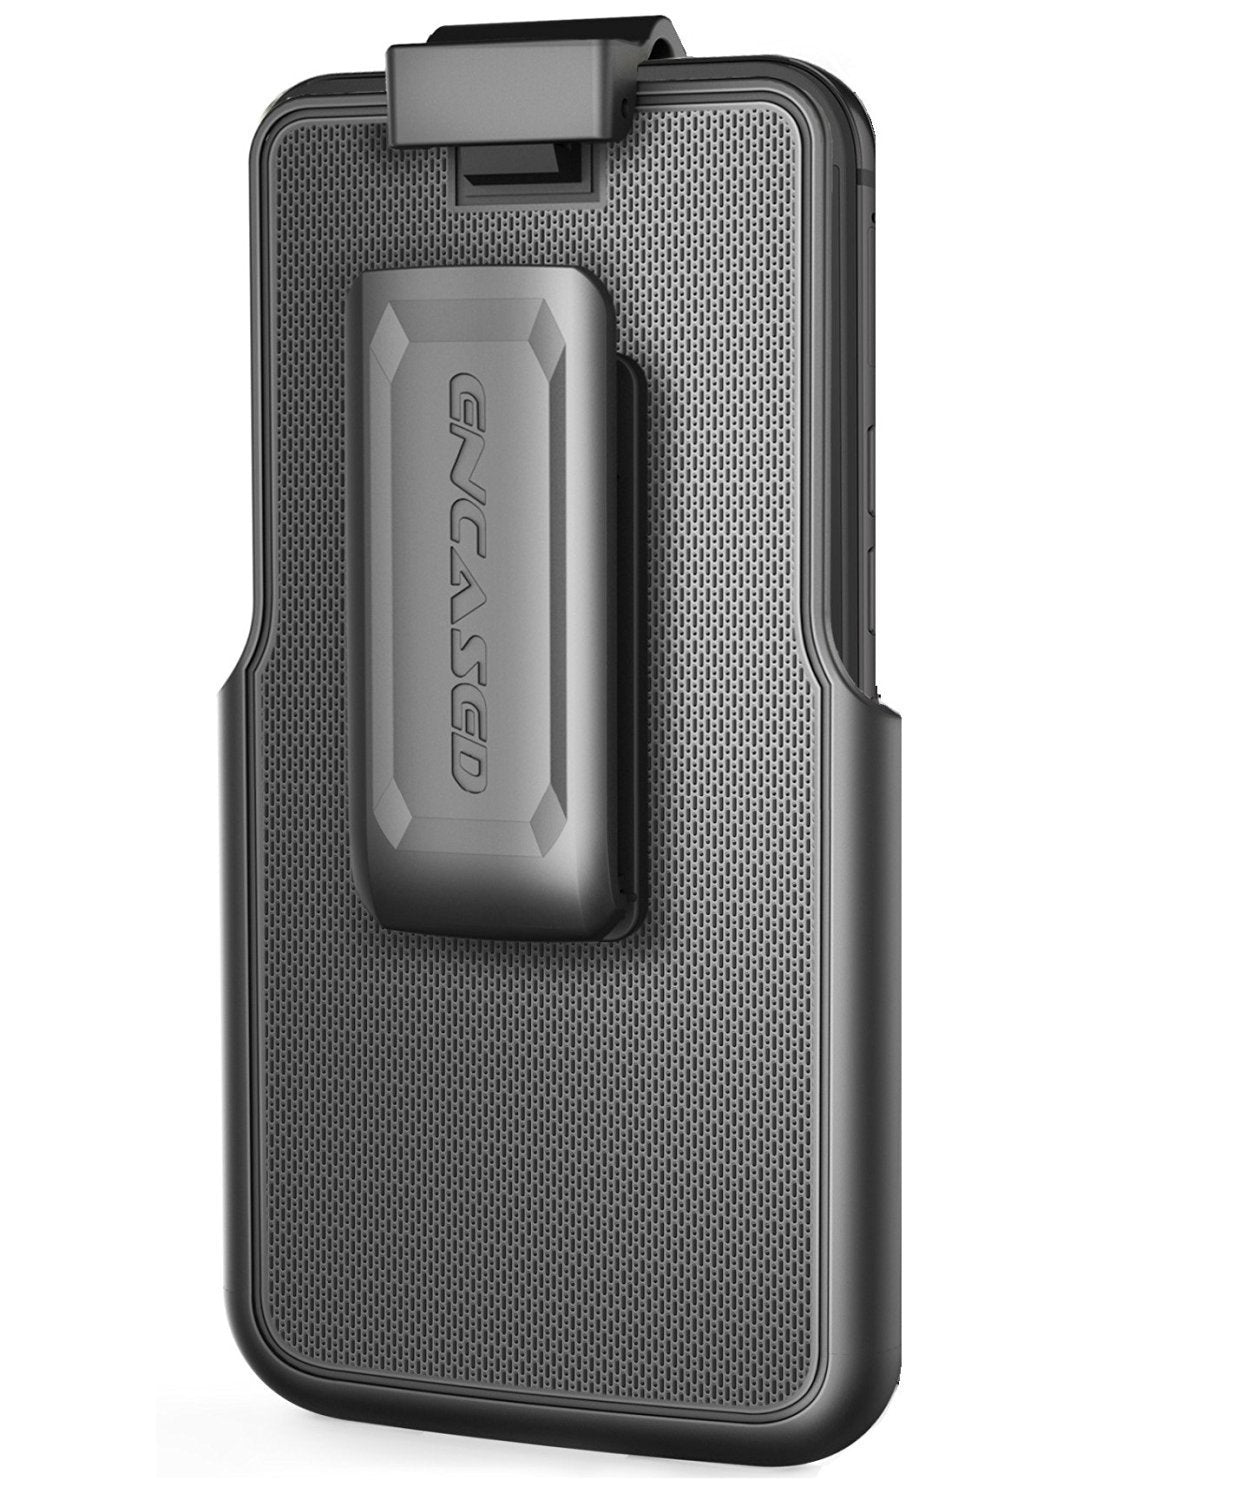 Belt Clip Holster for Spigen Rugged Armor Case - Samsung Galaxy S7 (case not included) (Encased Products)